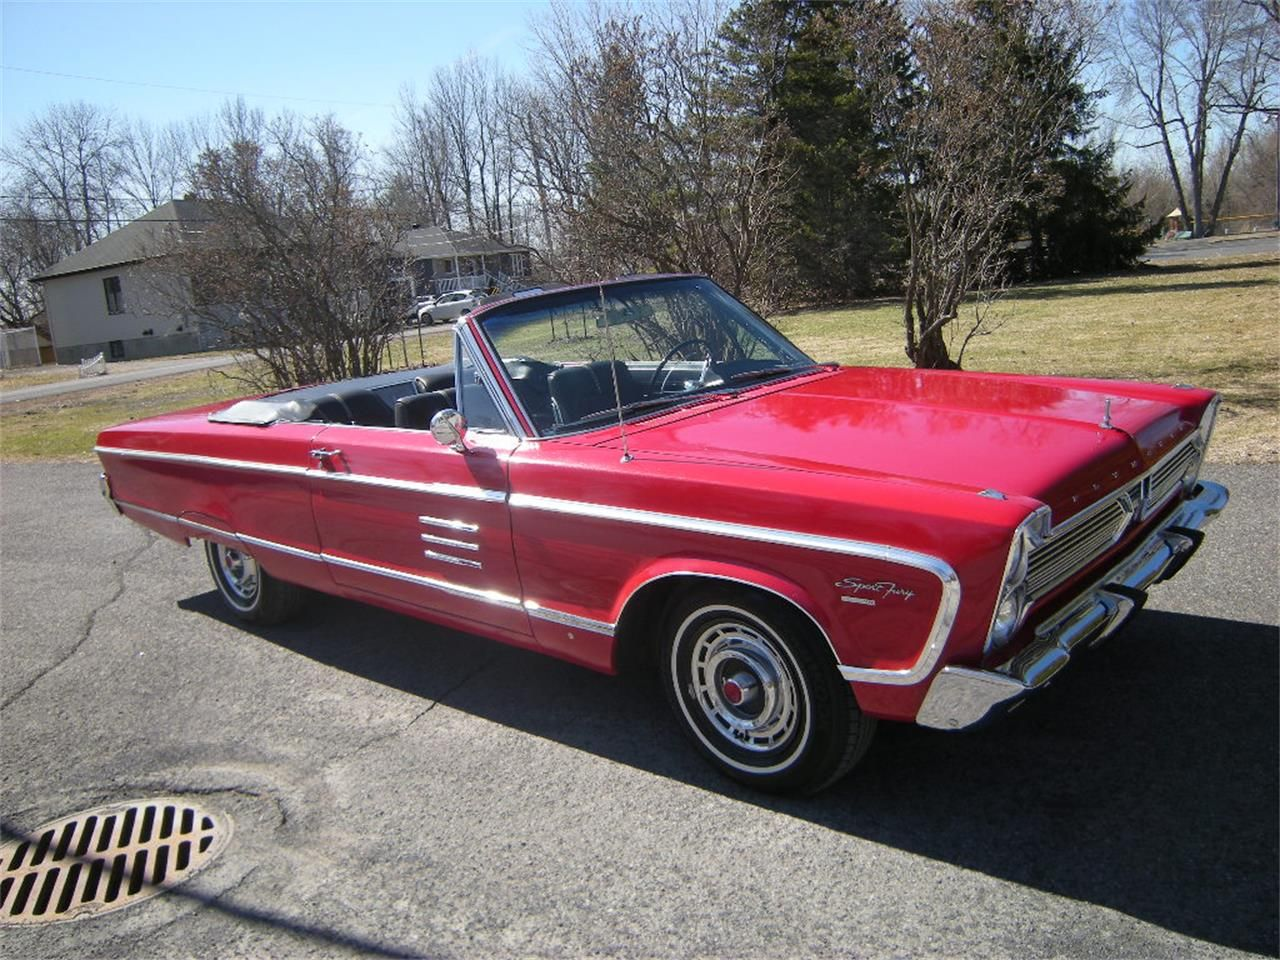 1966 Plymouth Sport Fury Convertible Fury, Plymouth fury